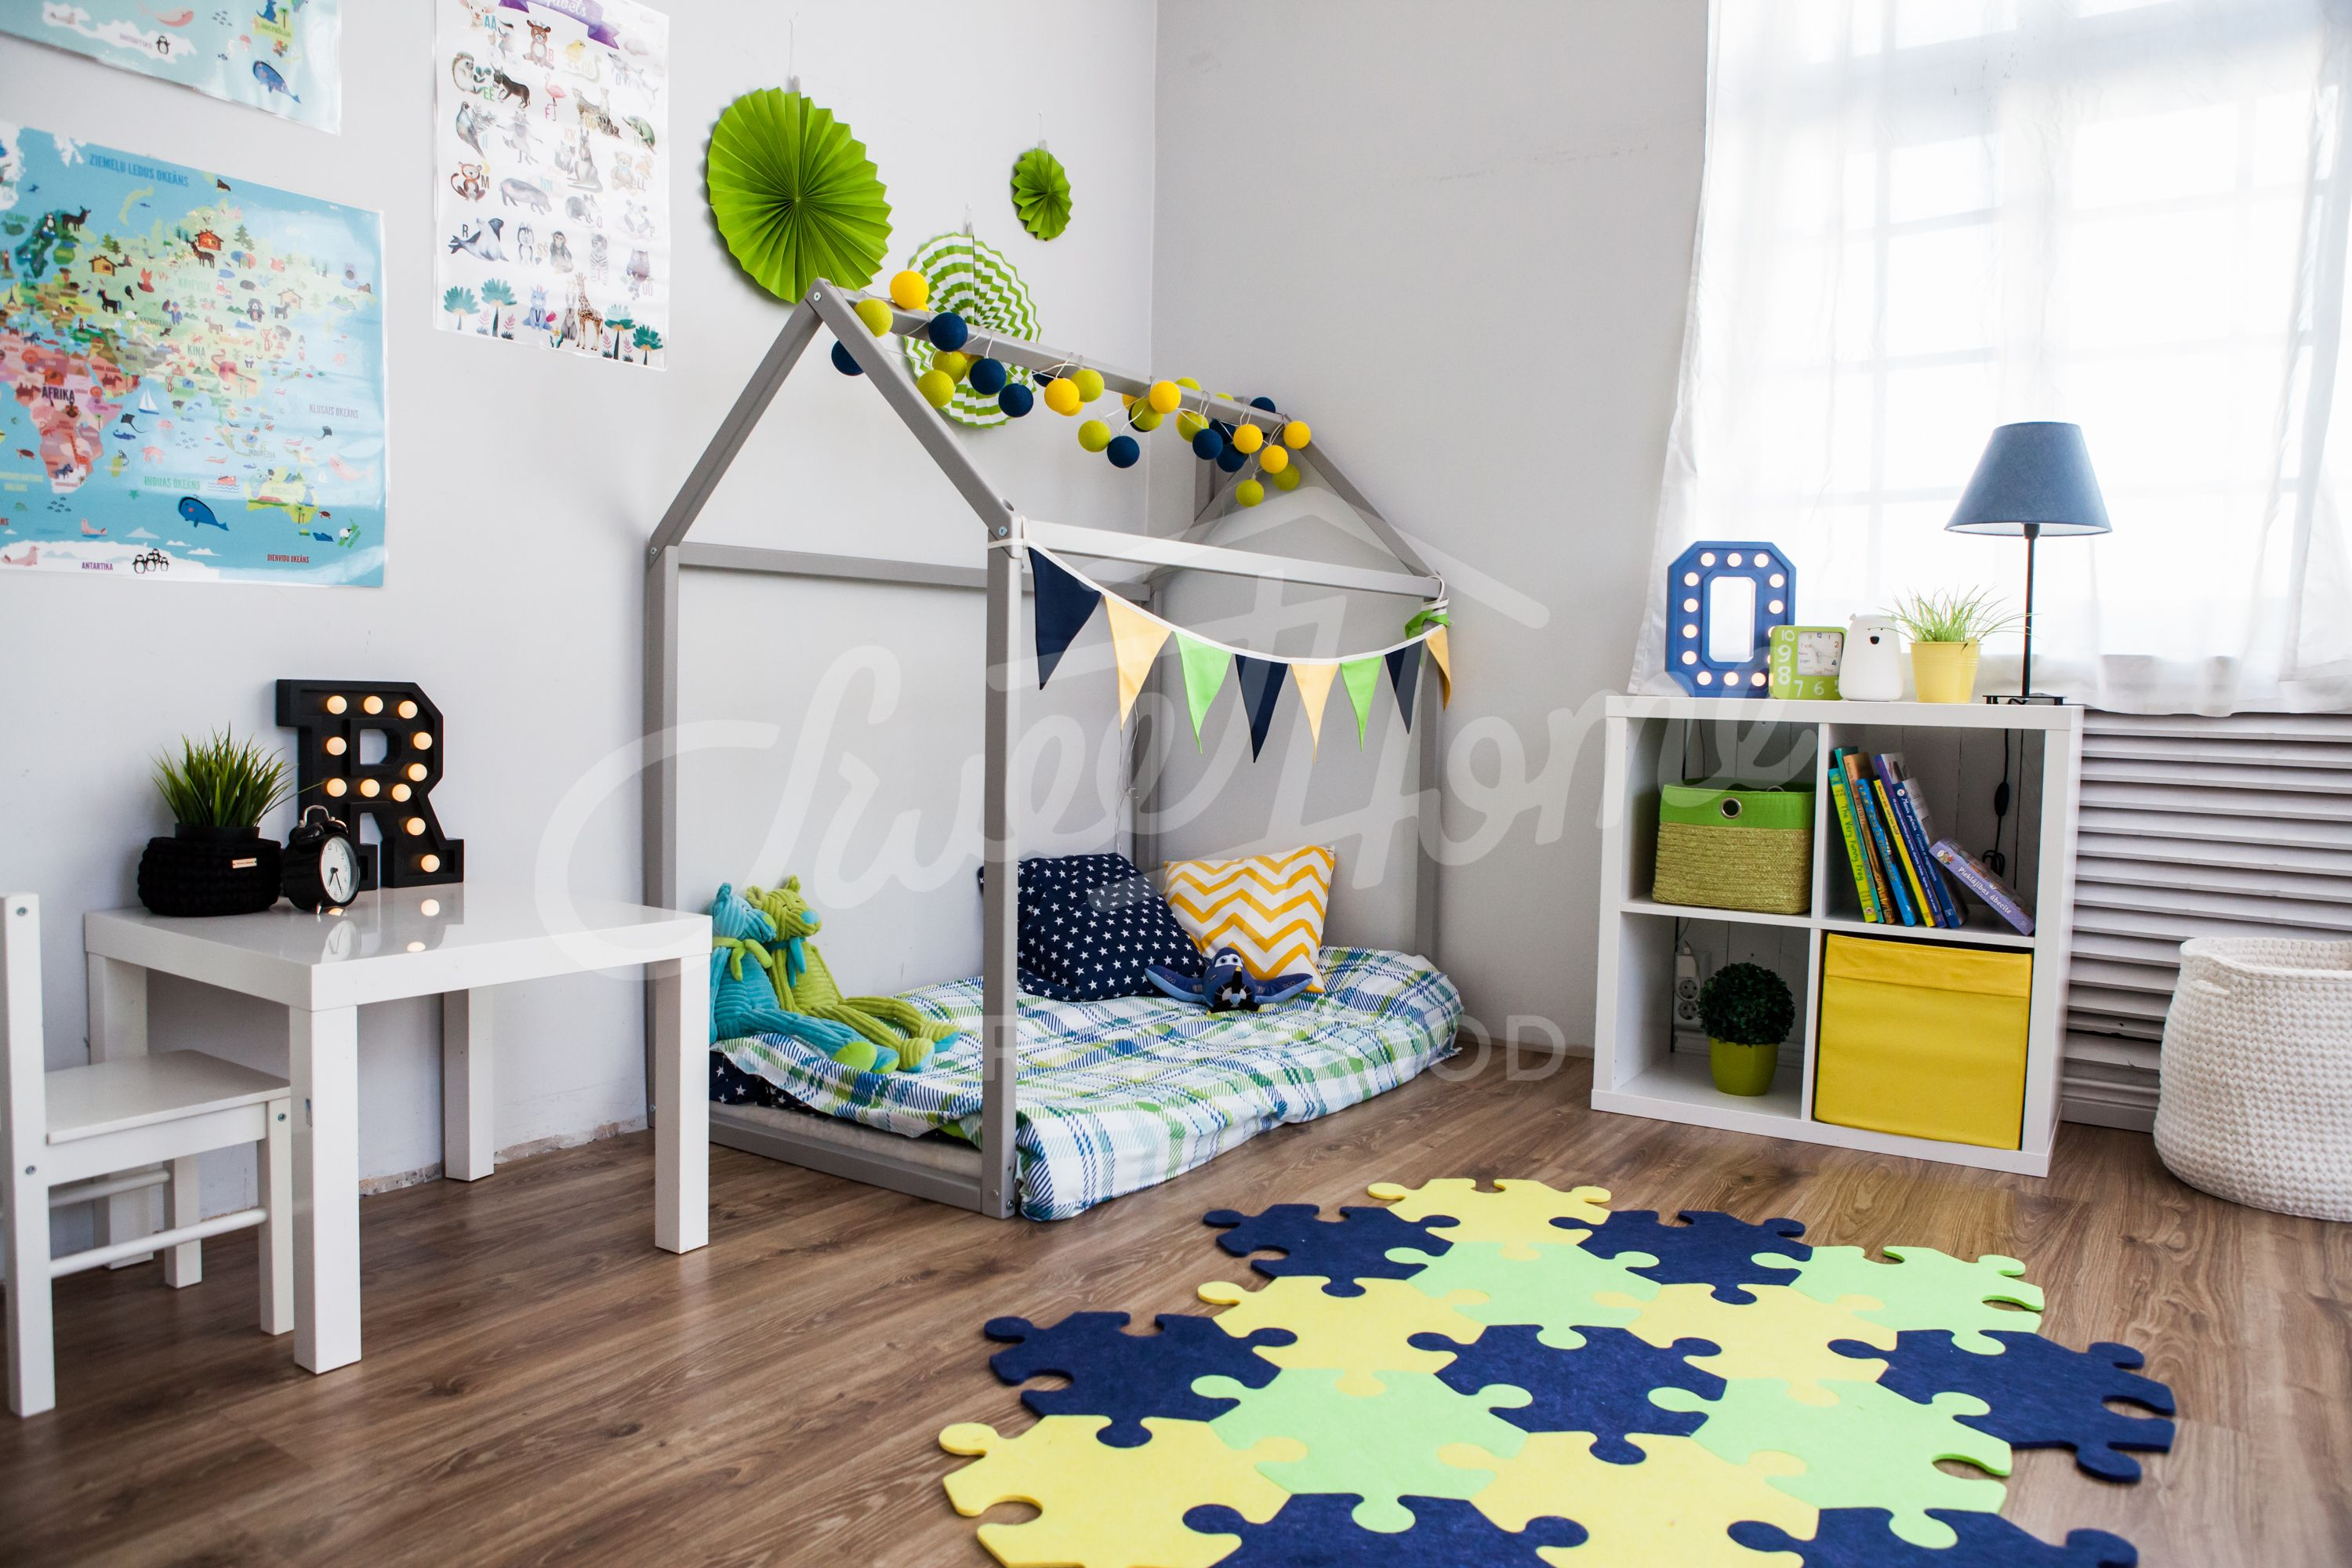 Blue Green And Yellow Boys Room Interior Ideas Nursery Decor Bright Colors